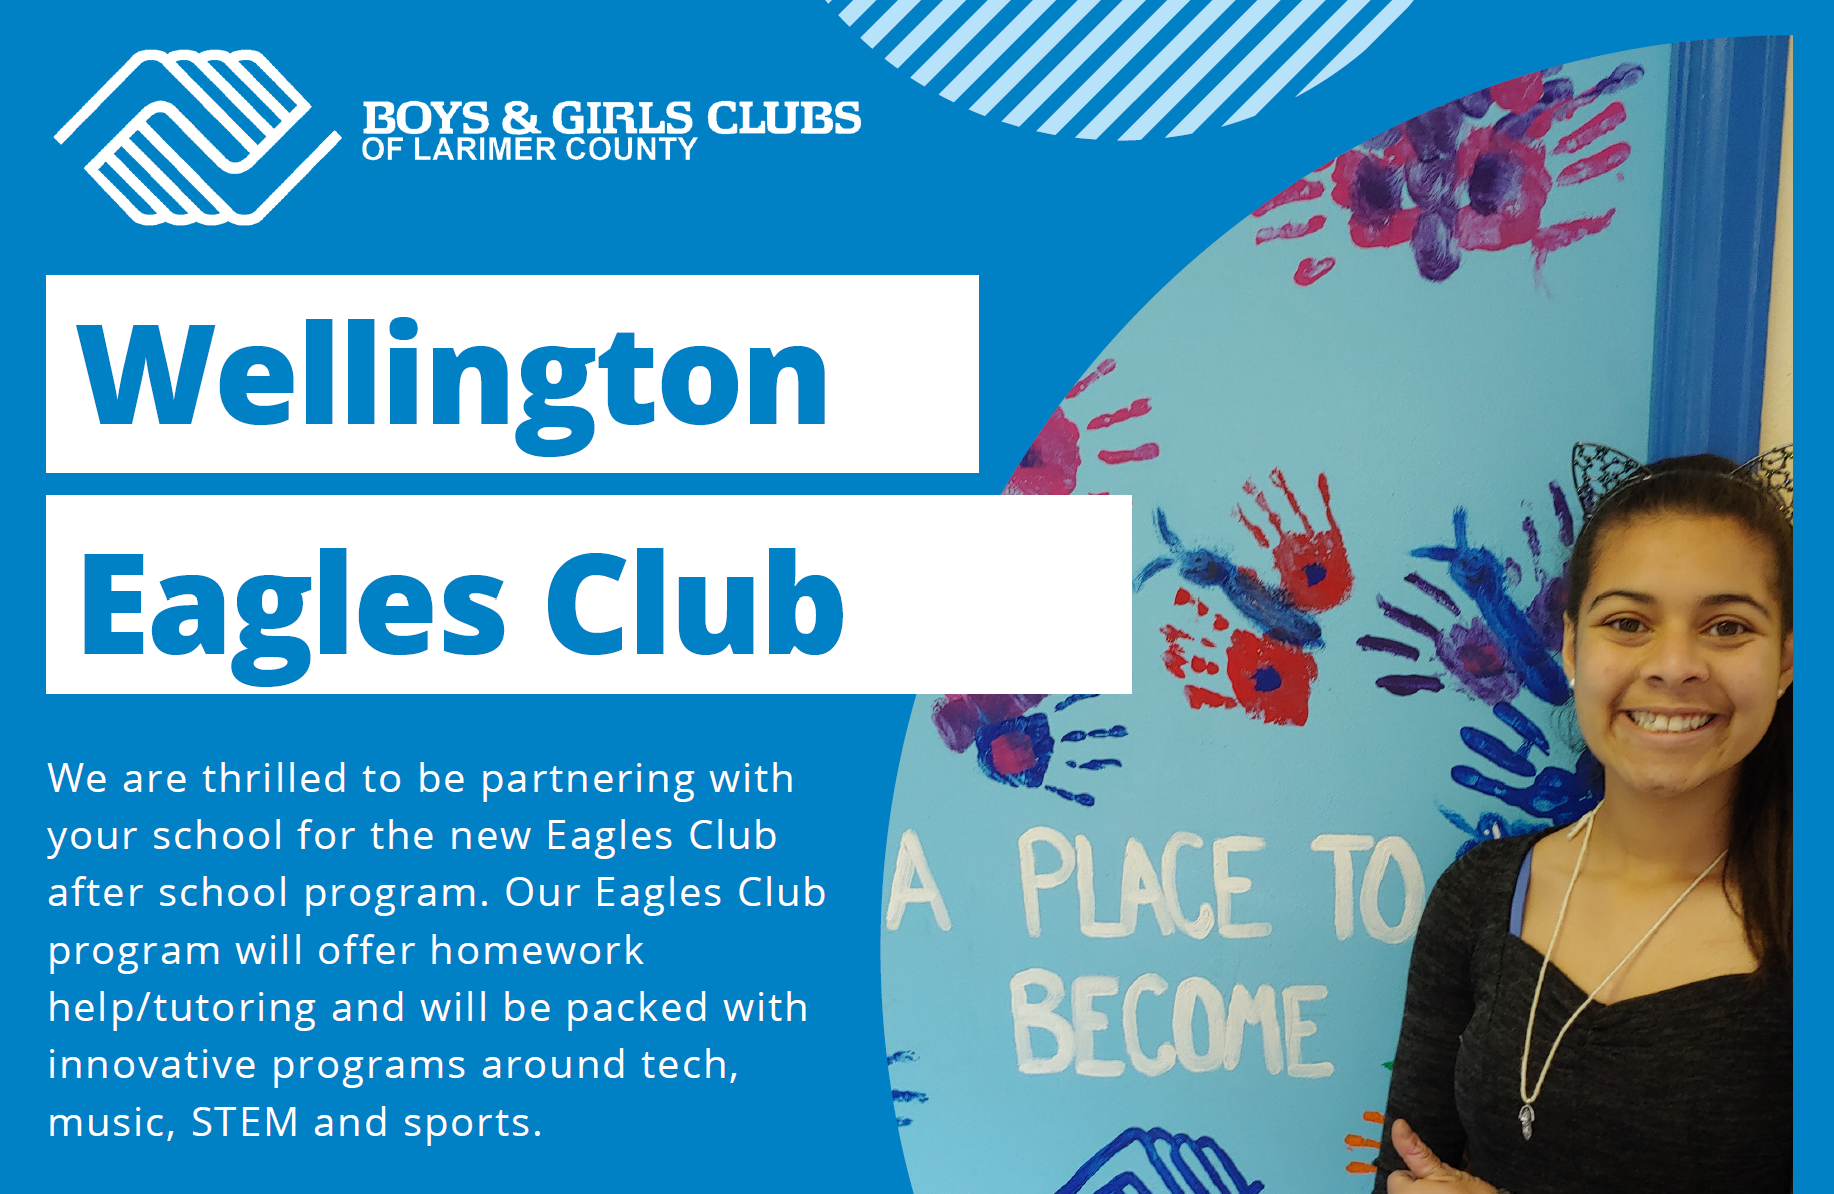 Eagles Club in Partnership with Boys & Girls Club